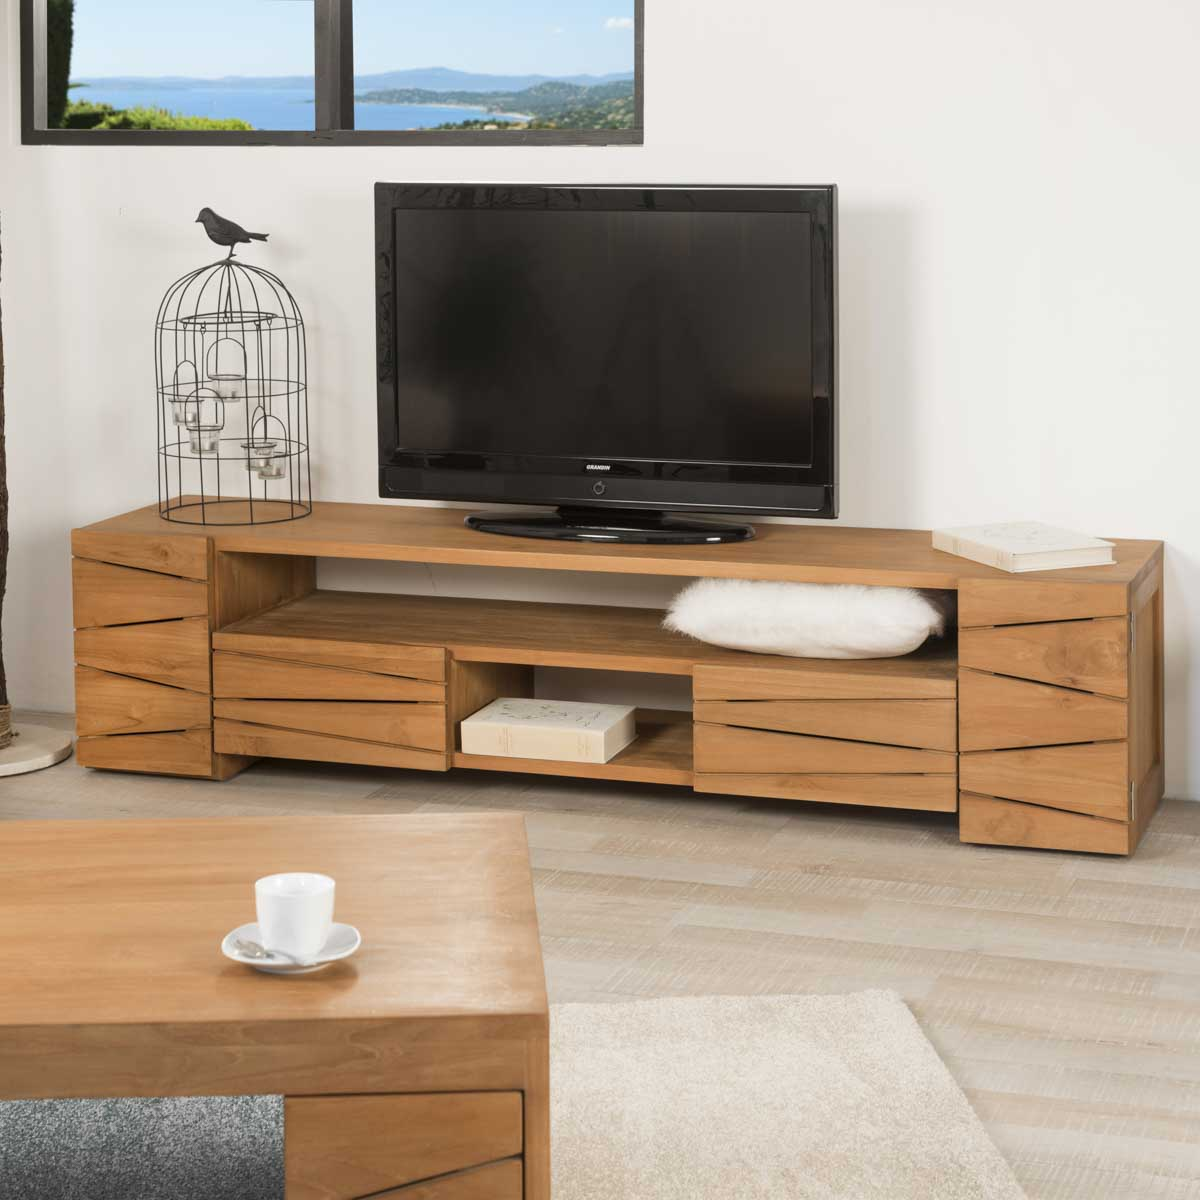 Meuble Tv Teck Meuble Tv Bois Naturel Rectangle S R Nit 170  # Meuble Tv En Promo